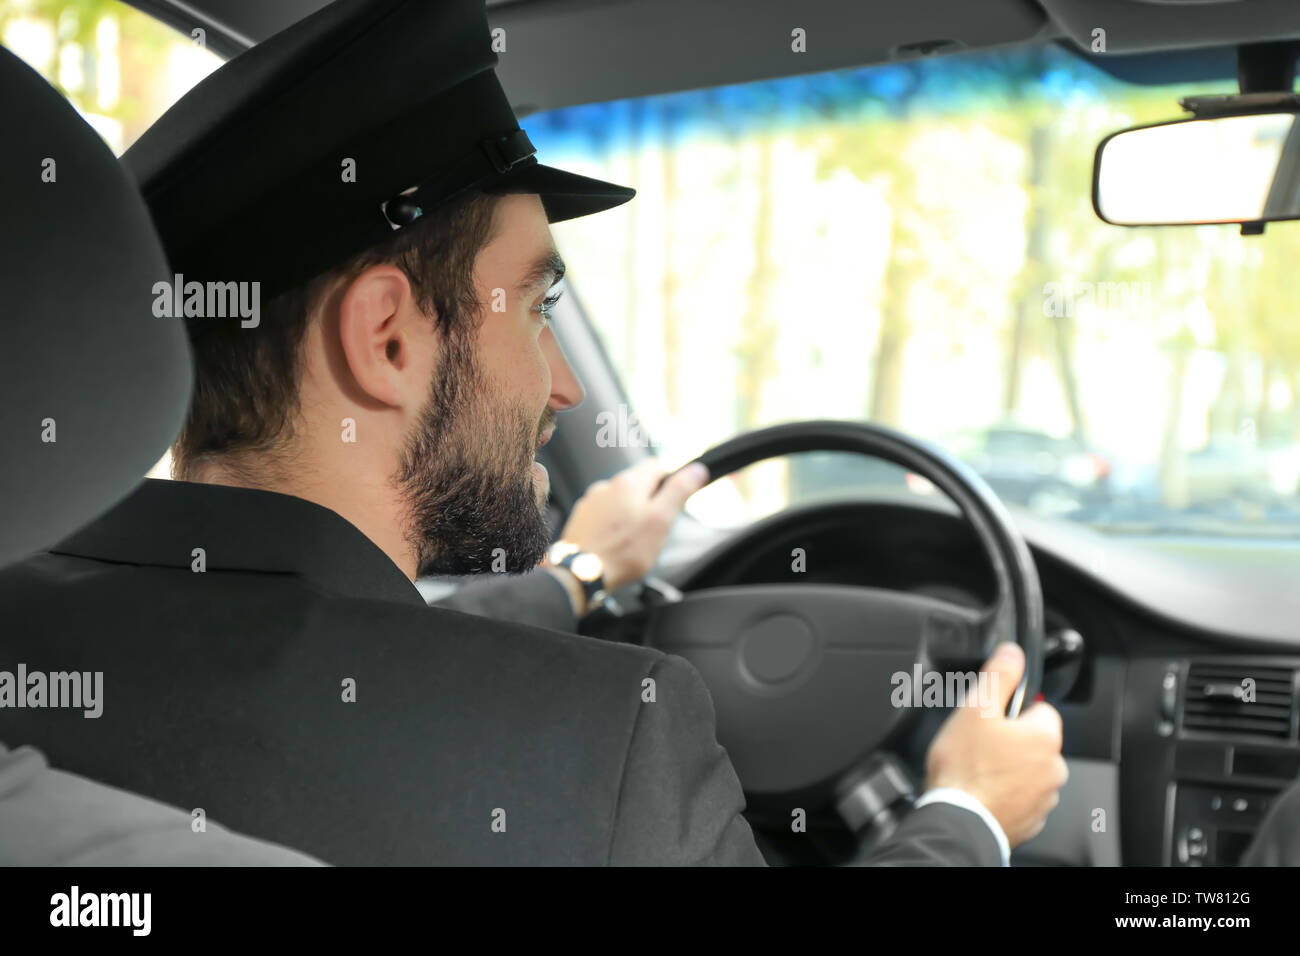 Handsome man driving taxi - Stock Image